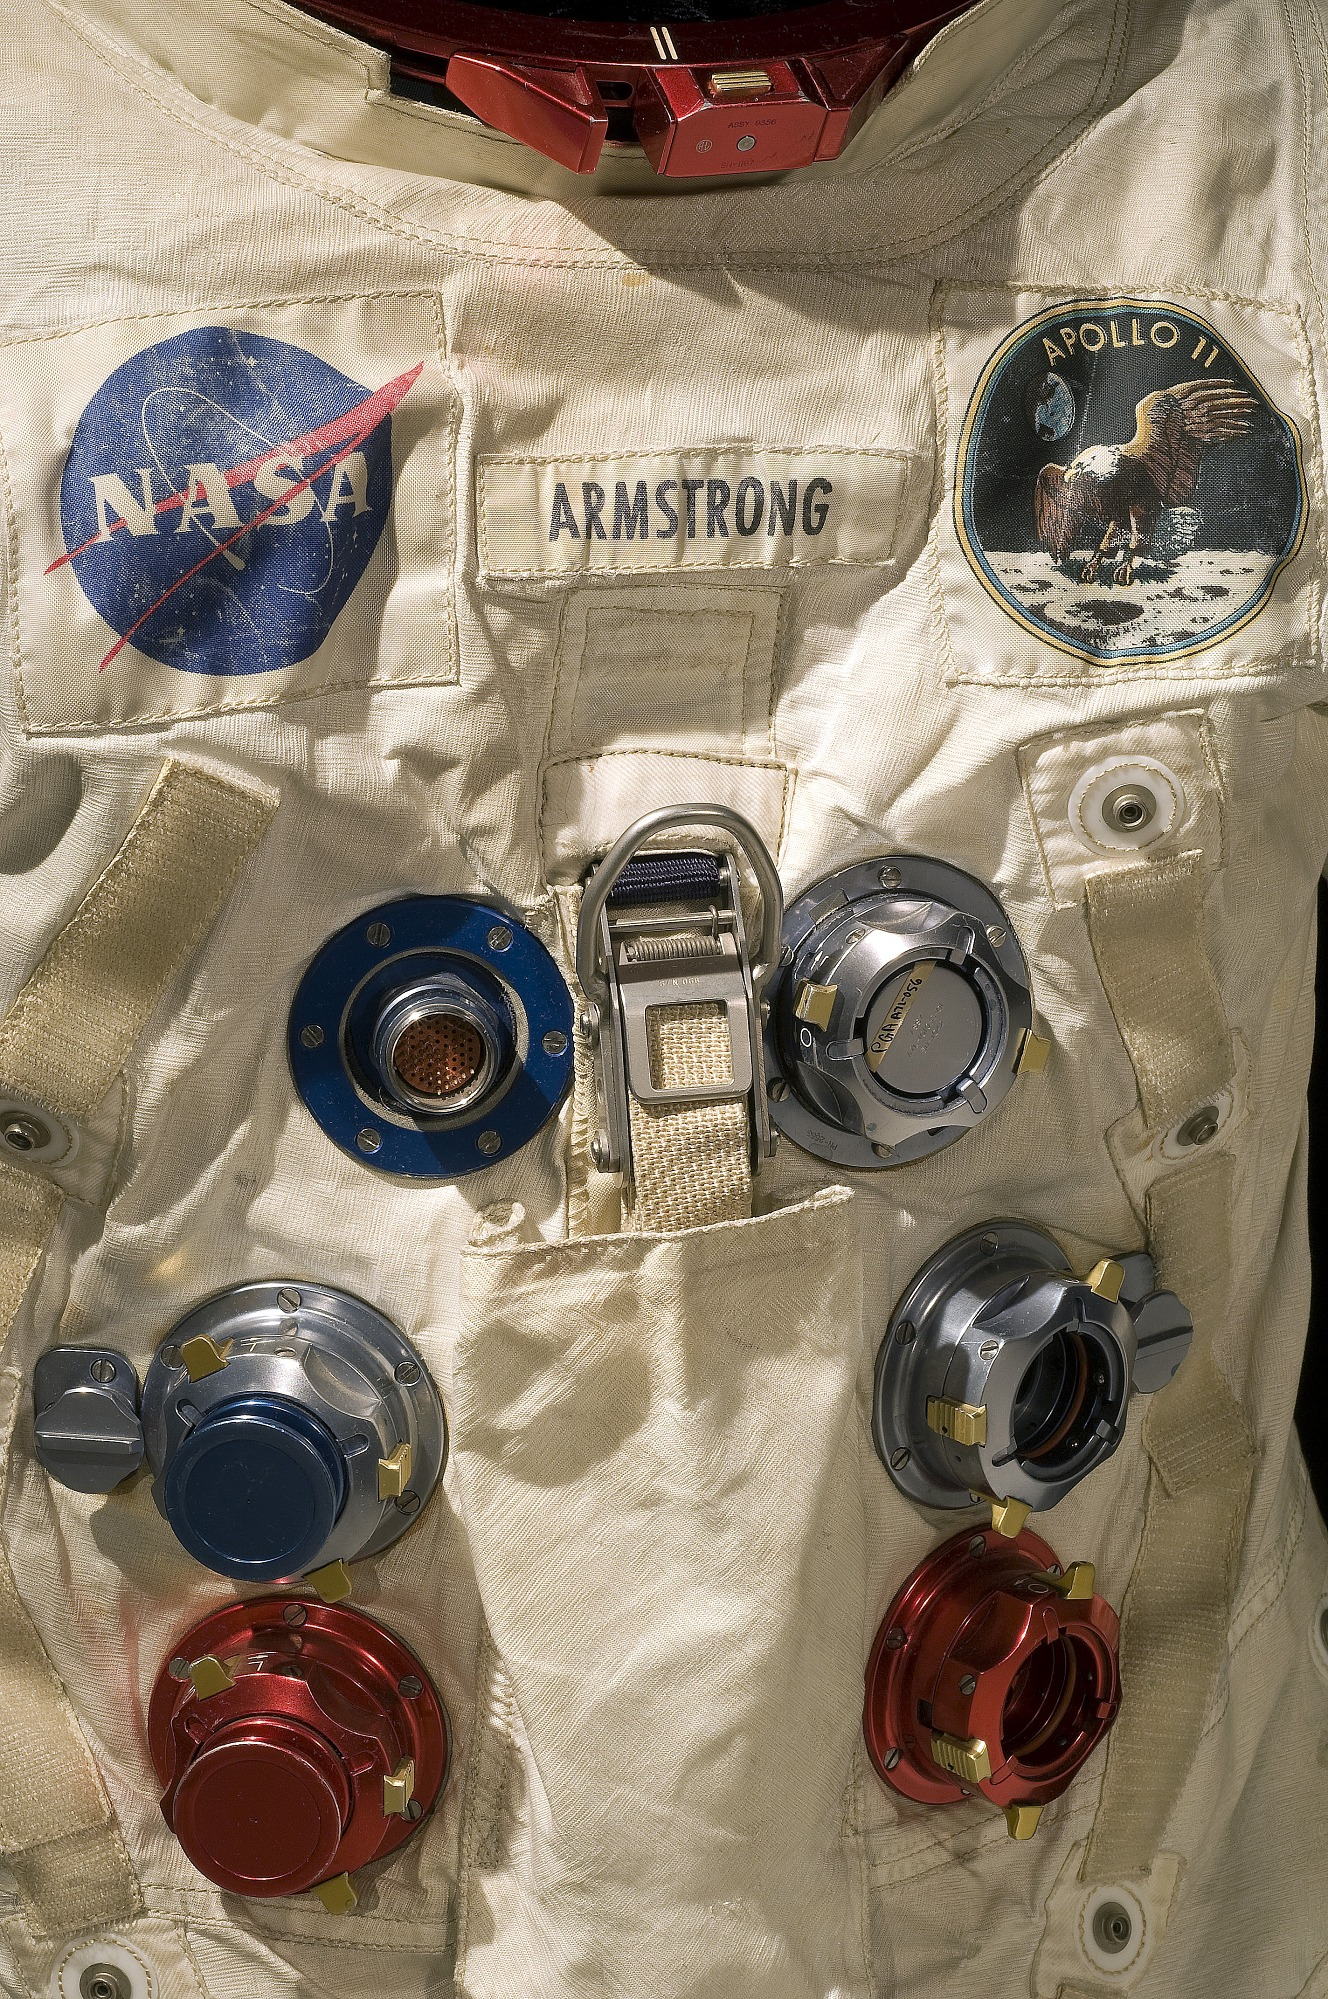 Image of : Pressure Suit, A7-L, Armstrong, Apollo 11, Flown